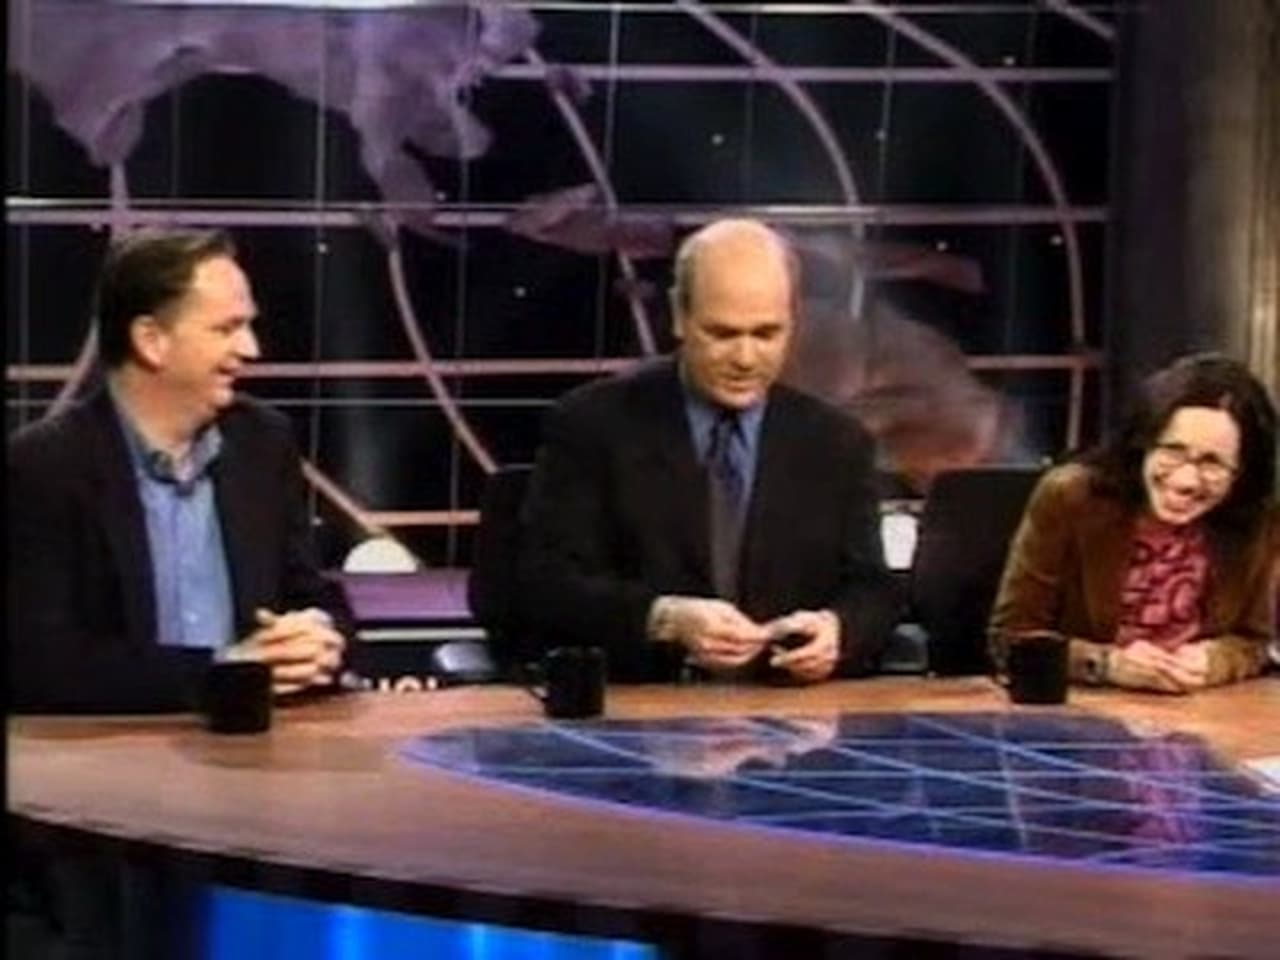 Real Time with Bill Maher - Season 1 Episode 6 : March 28, 2003